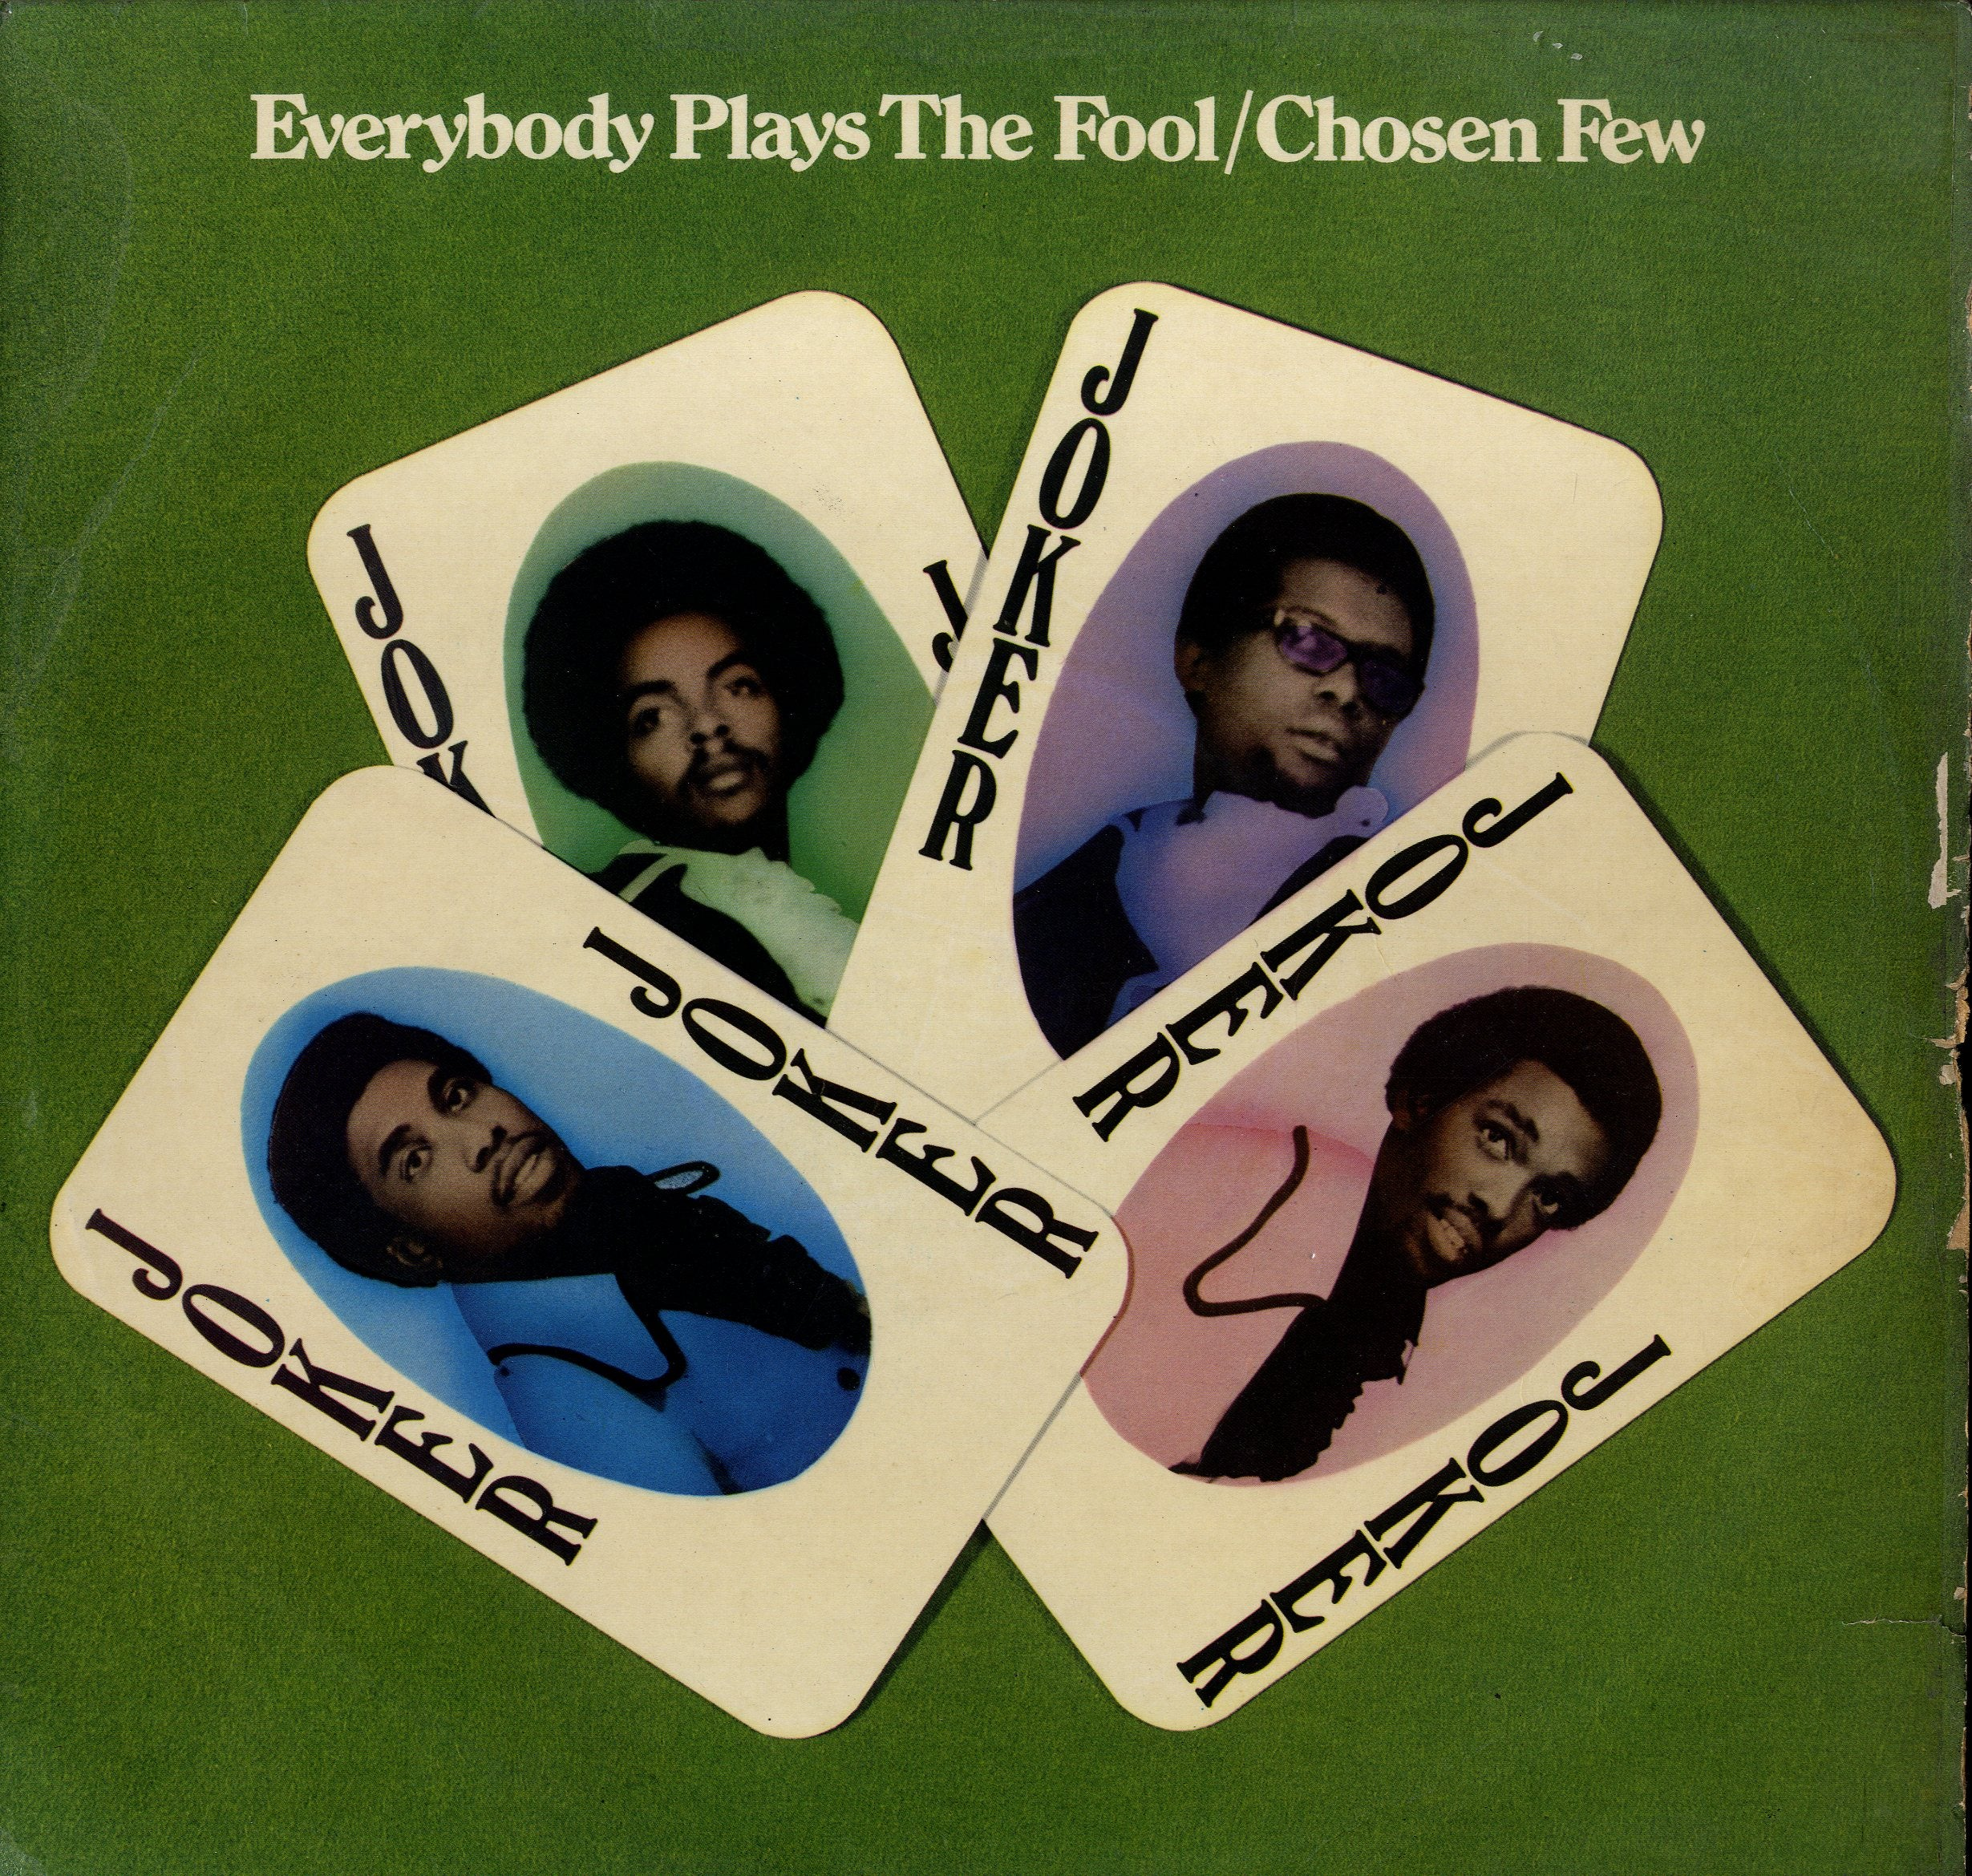 CHOSEN FEW [Everybody Plays The Fool]